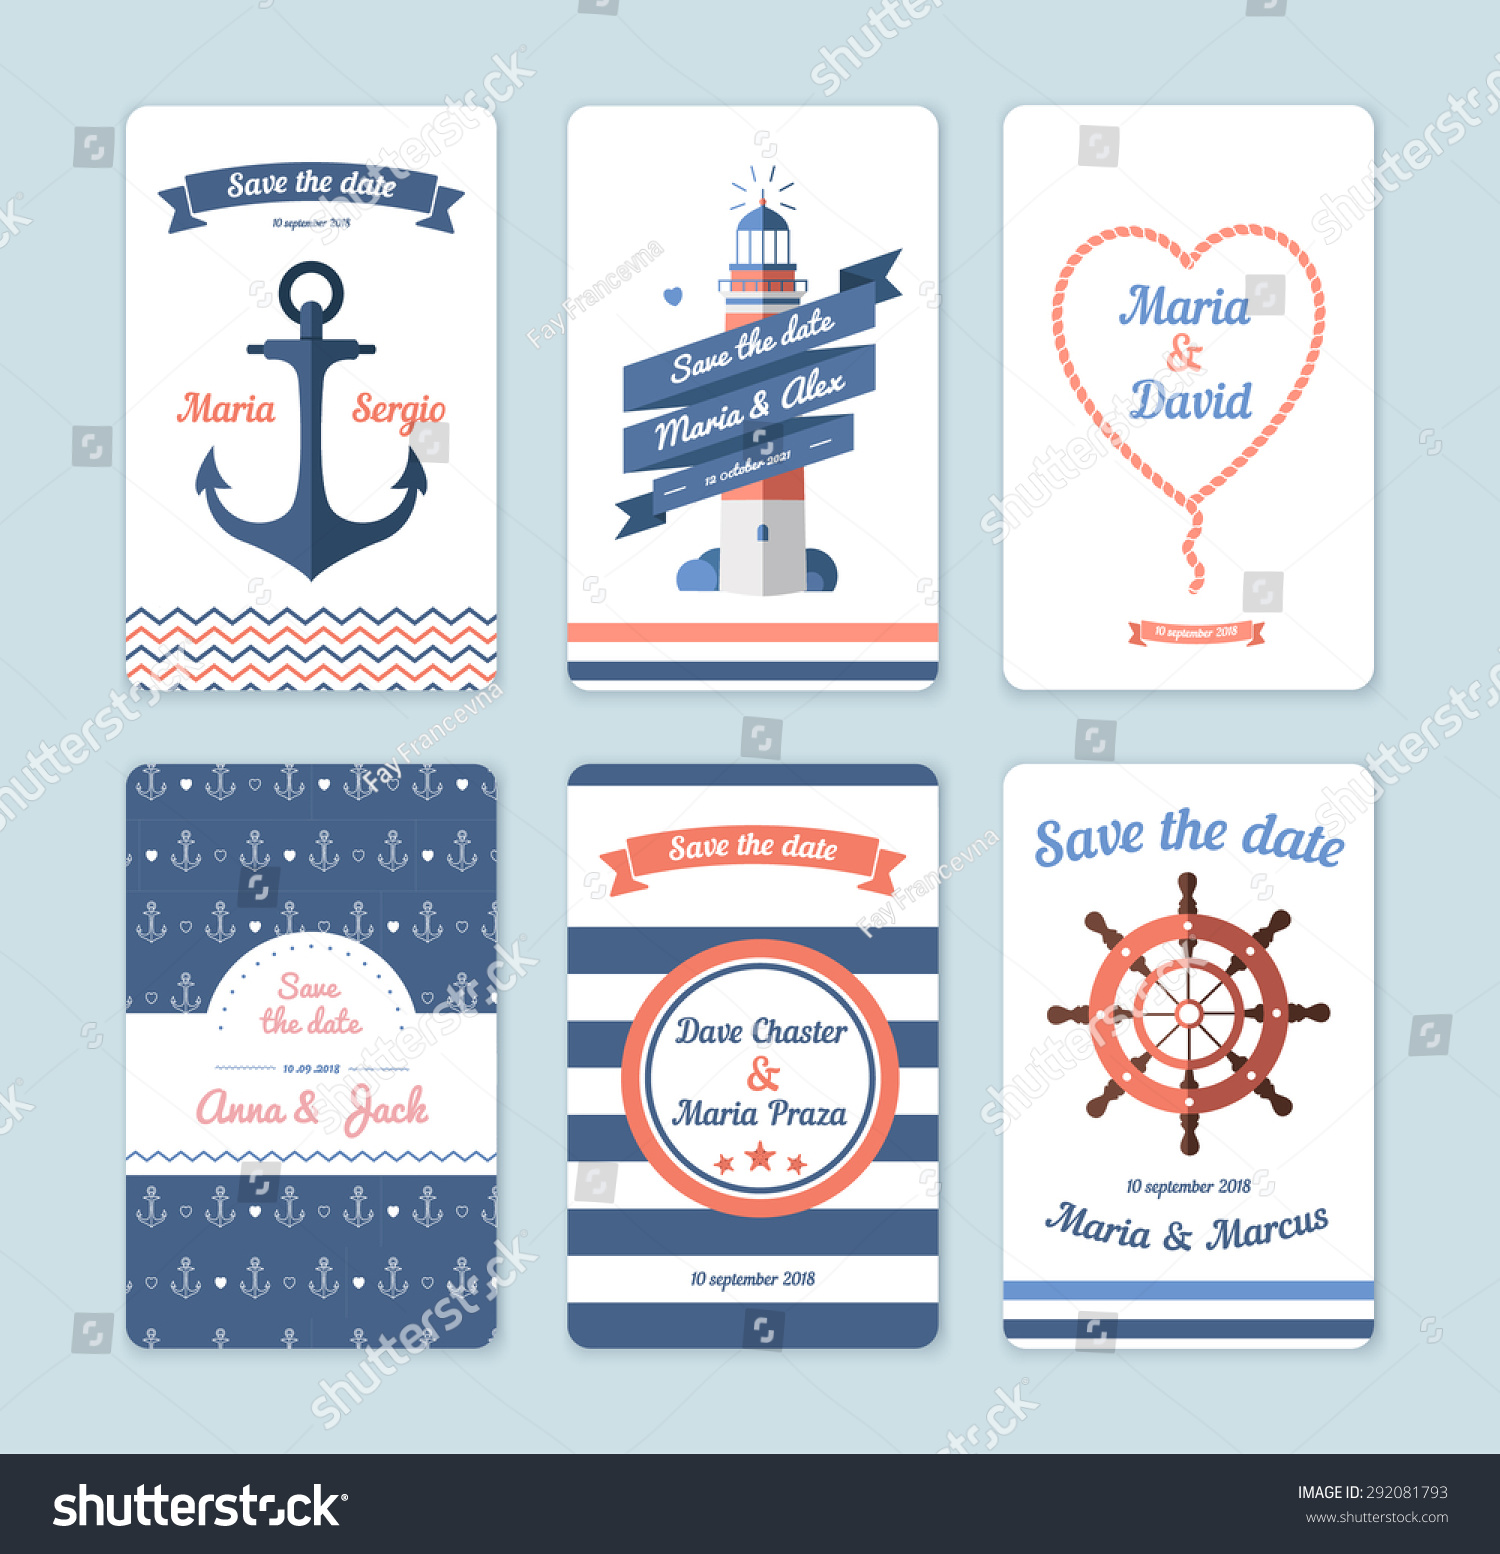 Wedding Invitation Card Save Date Sailor Stock Vector 292081793 - Shutterstock